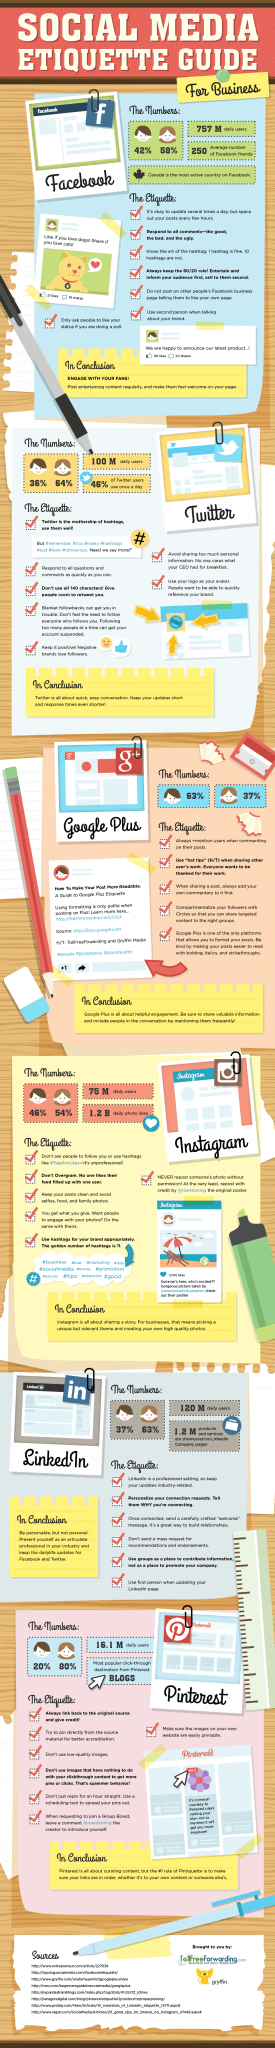 15 Ways to Be Nice in Social Media Posts